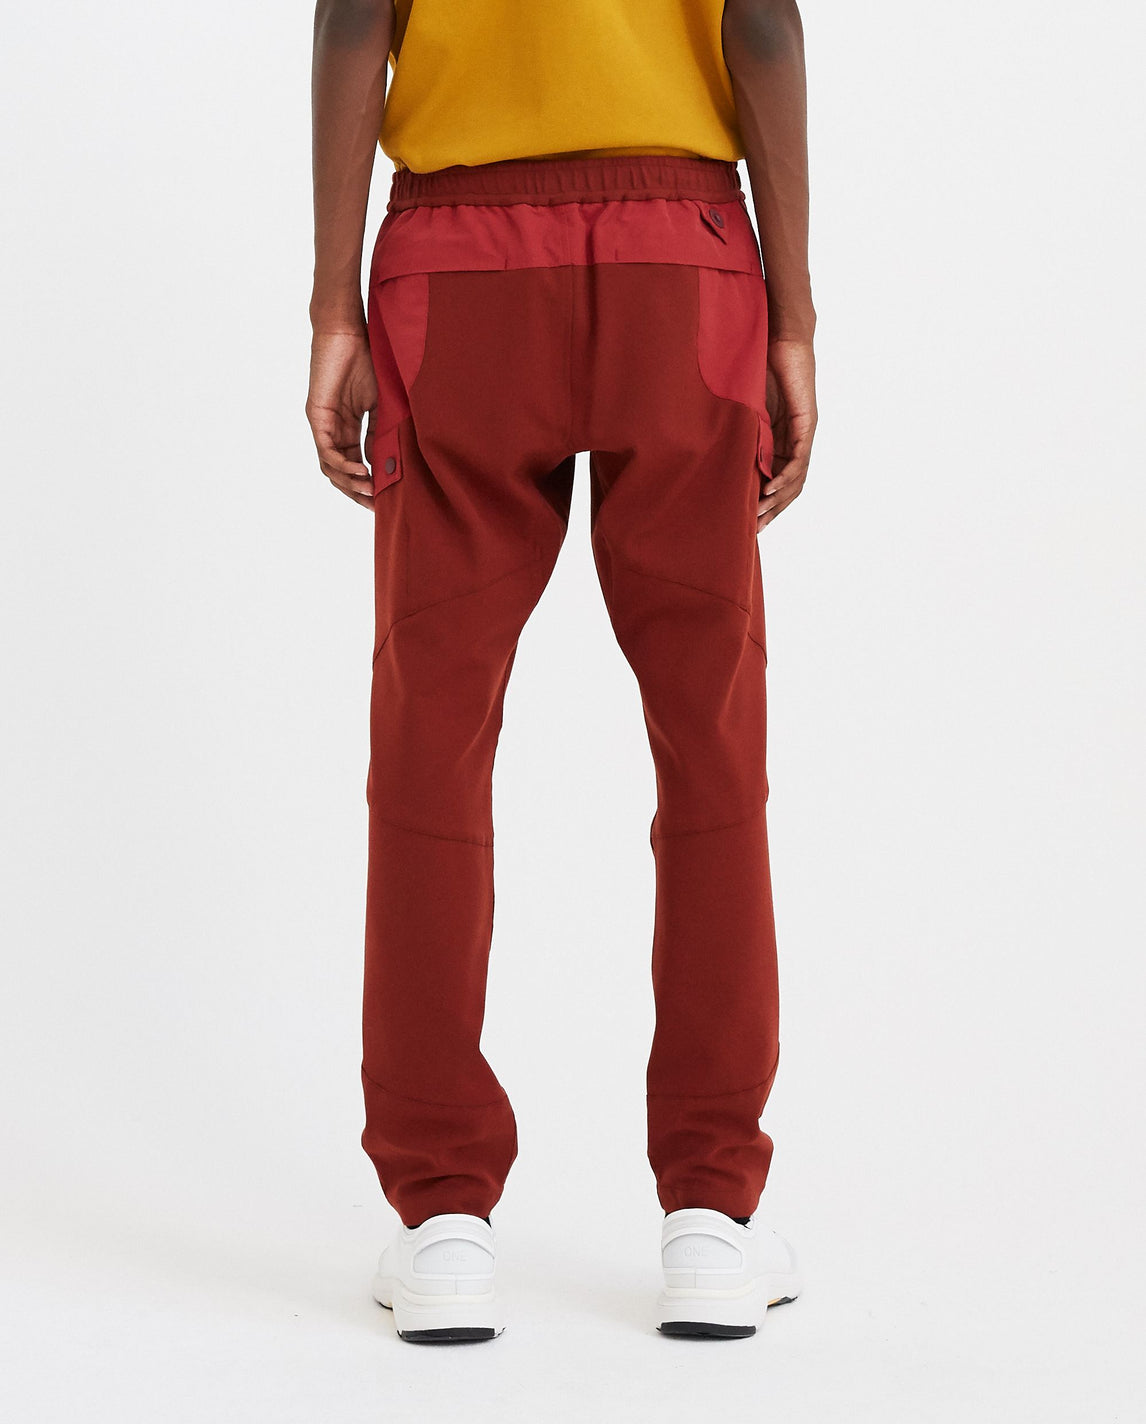 Stretched Twill Tapered Tech Pants - Burgundy / Red MENS WHITE MOUNTAINEERING